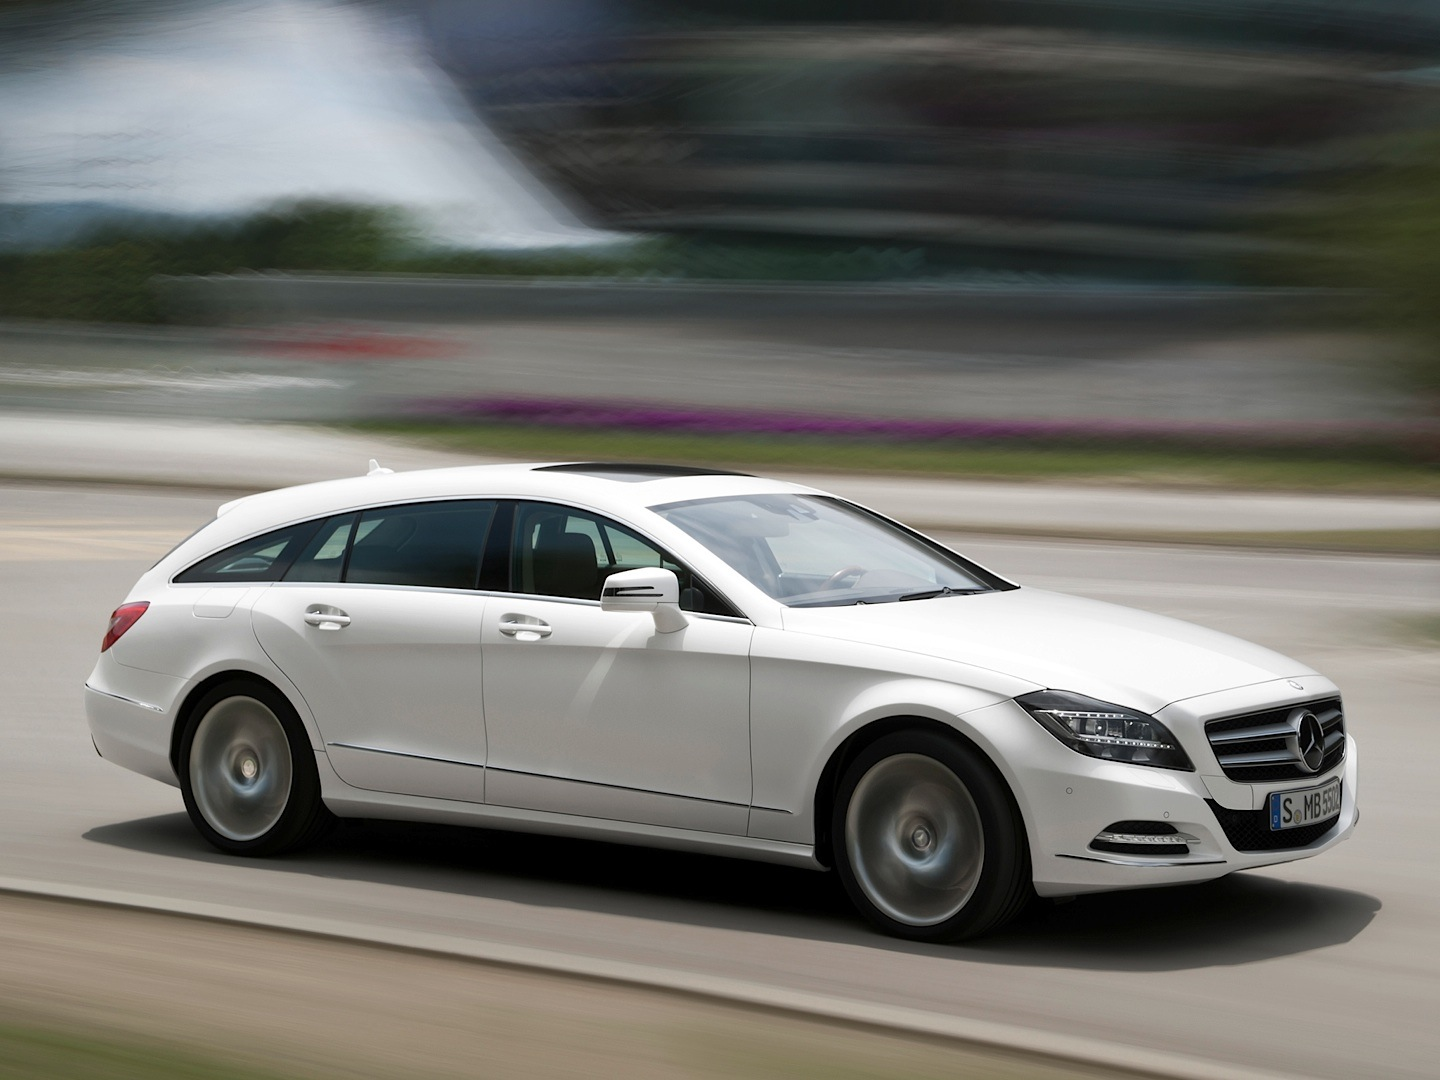 Cls 250 Cdi Shooting Brake Is Not That Slow Autoevolution